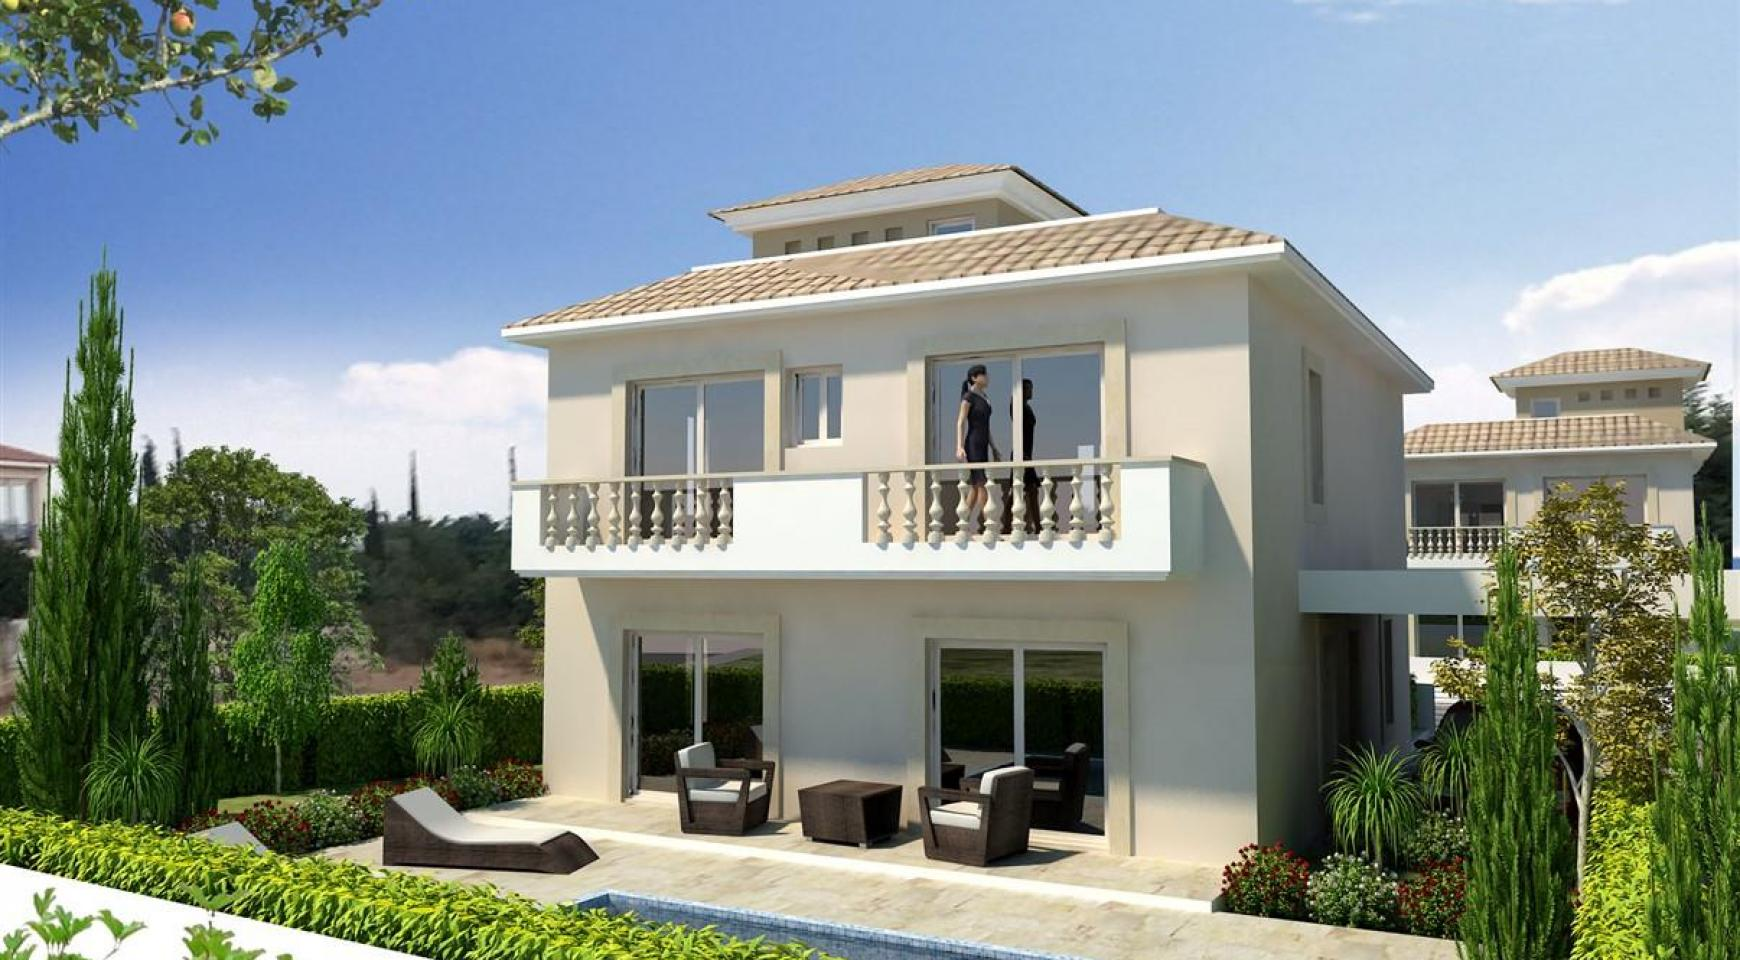 3 Bedroom Villa in New Project in Paphos - 9